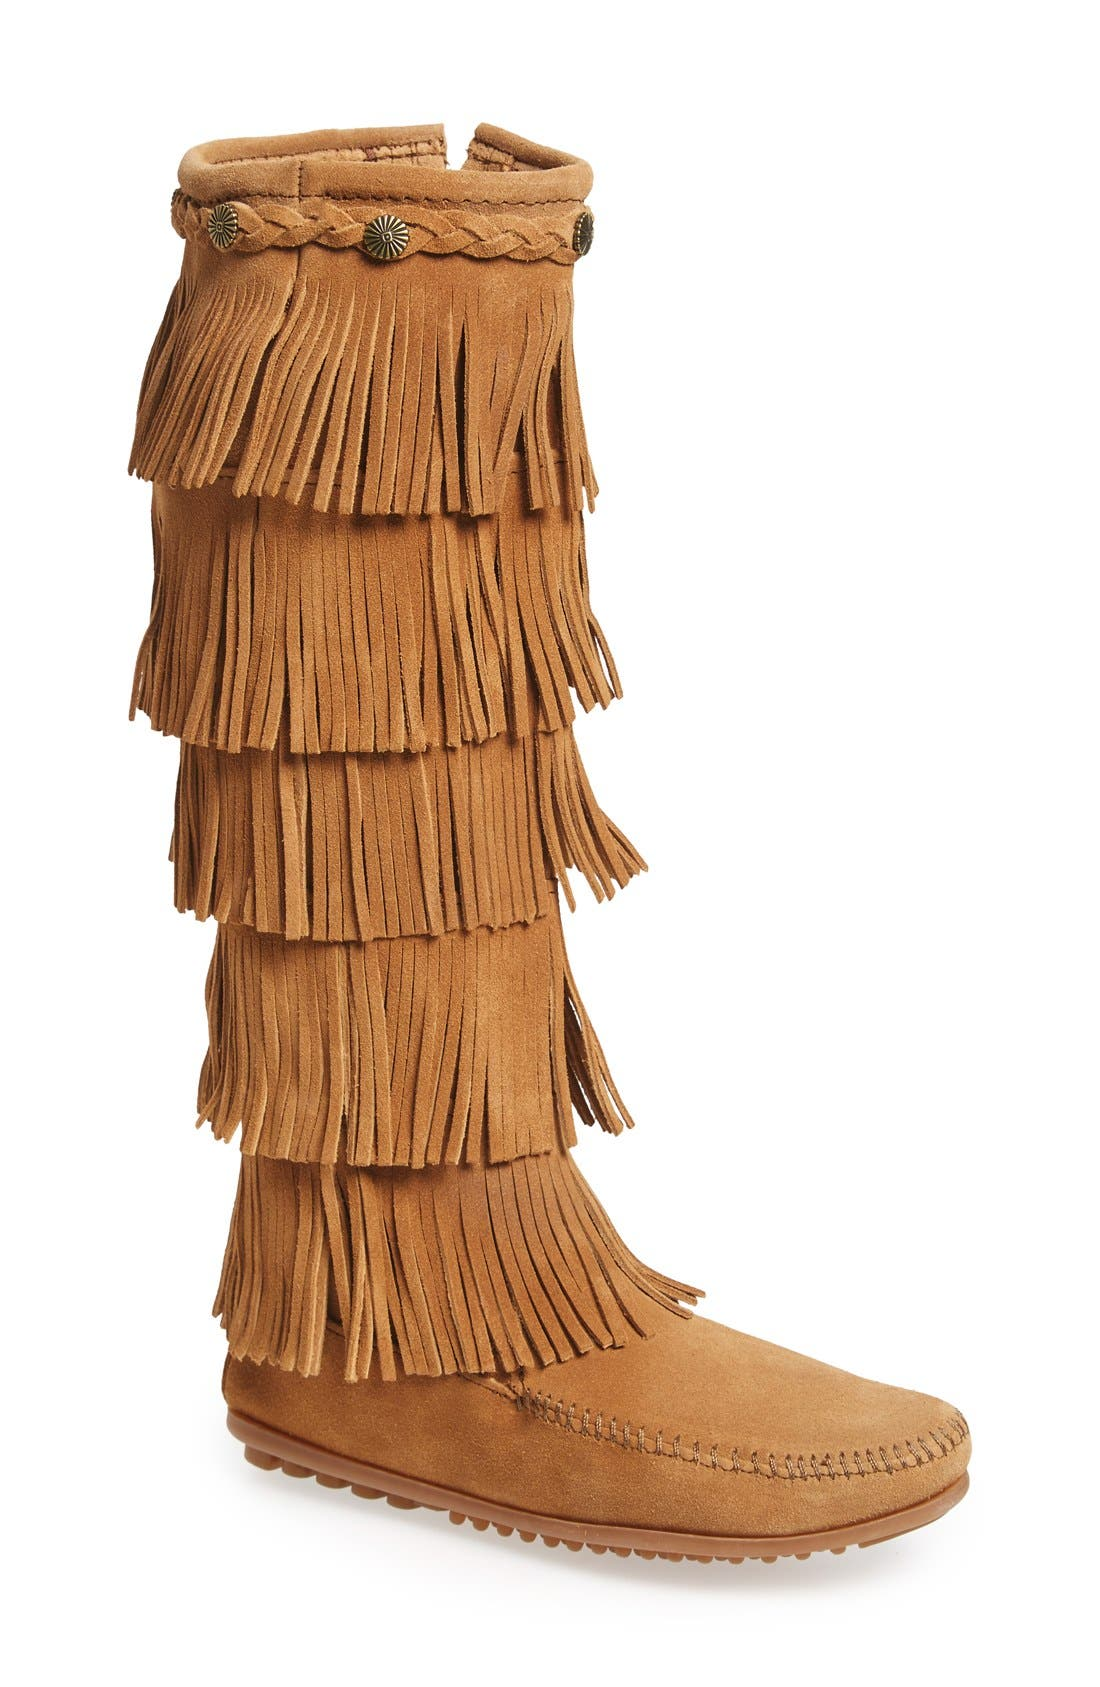 Alternate Image 1 Selected - Minnetonka '5 Layer Fringe' Boot